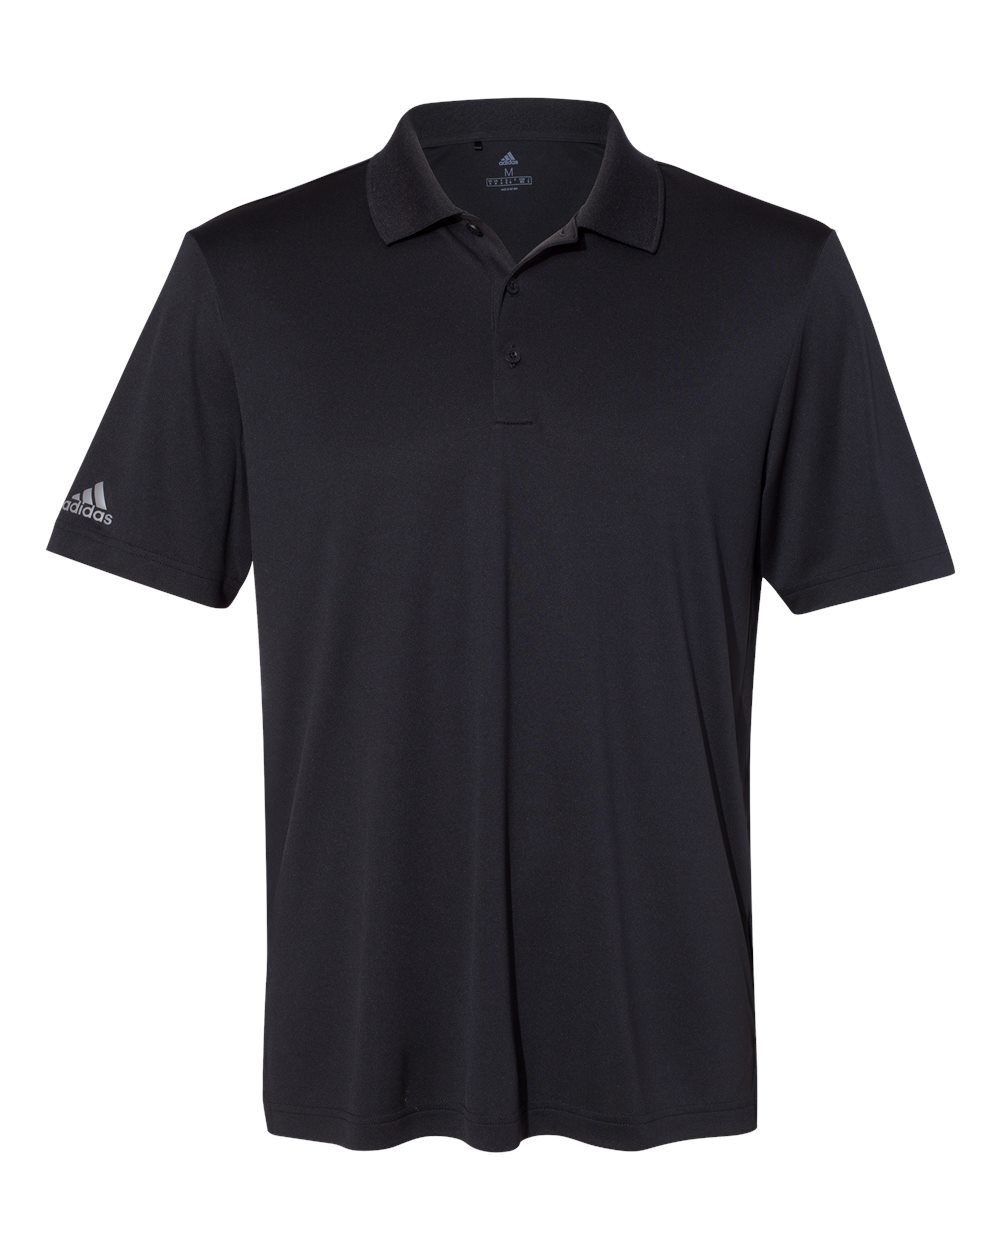 Adidas-Performance-Sport-Shirt-Polo-Button-A230-up-to-4XL miniature 6